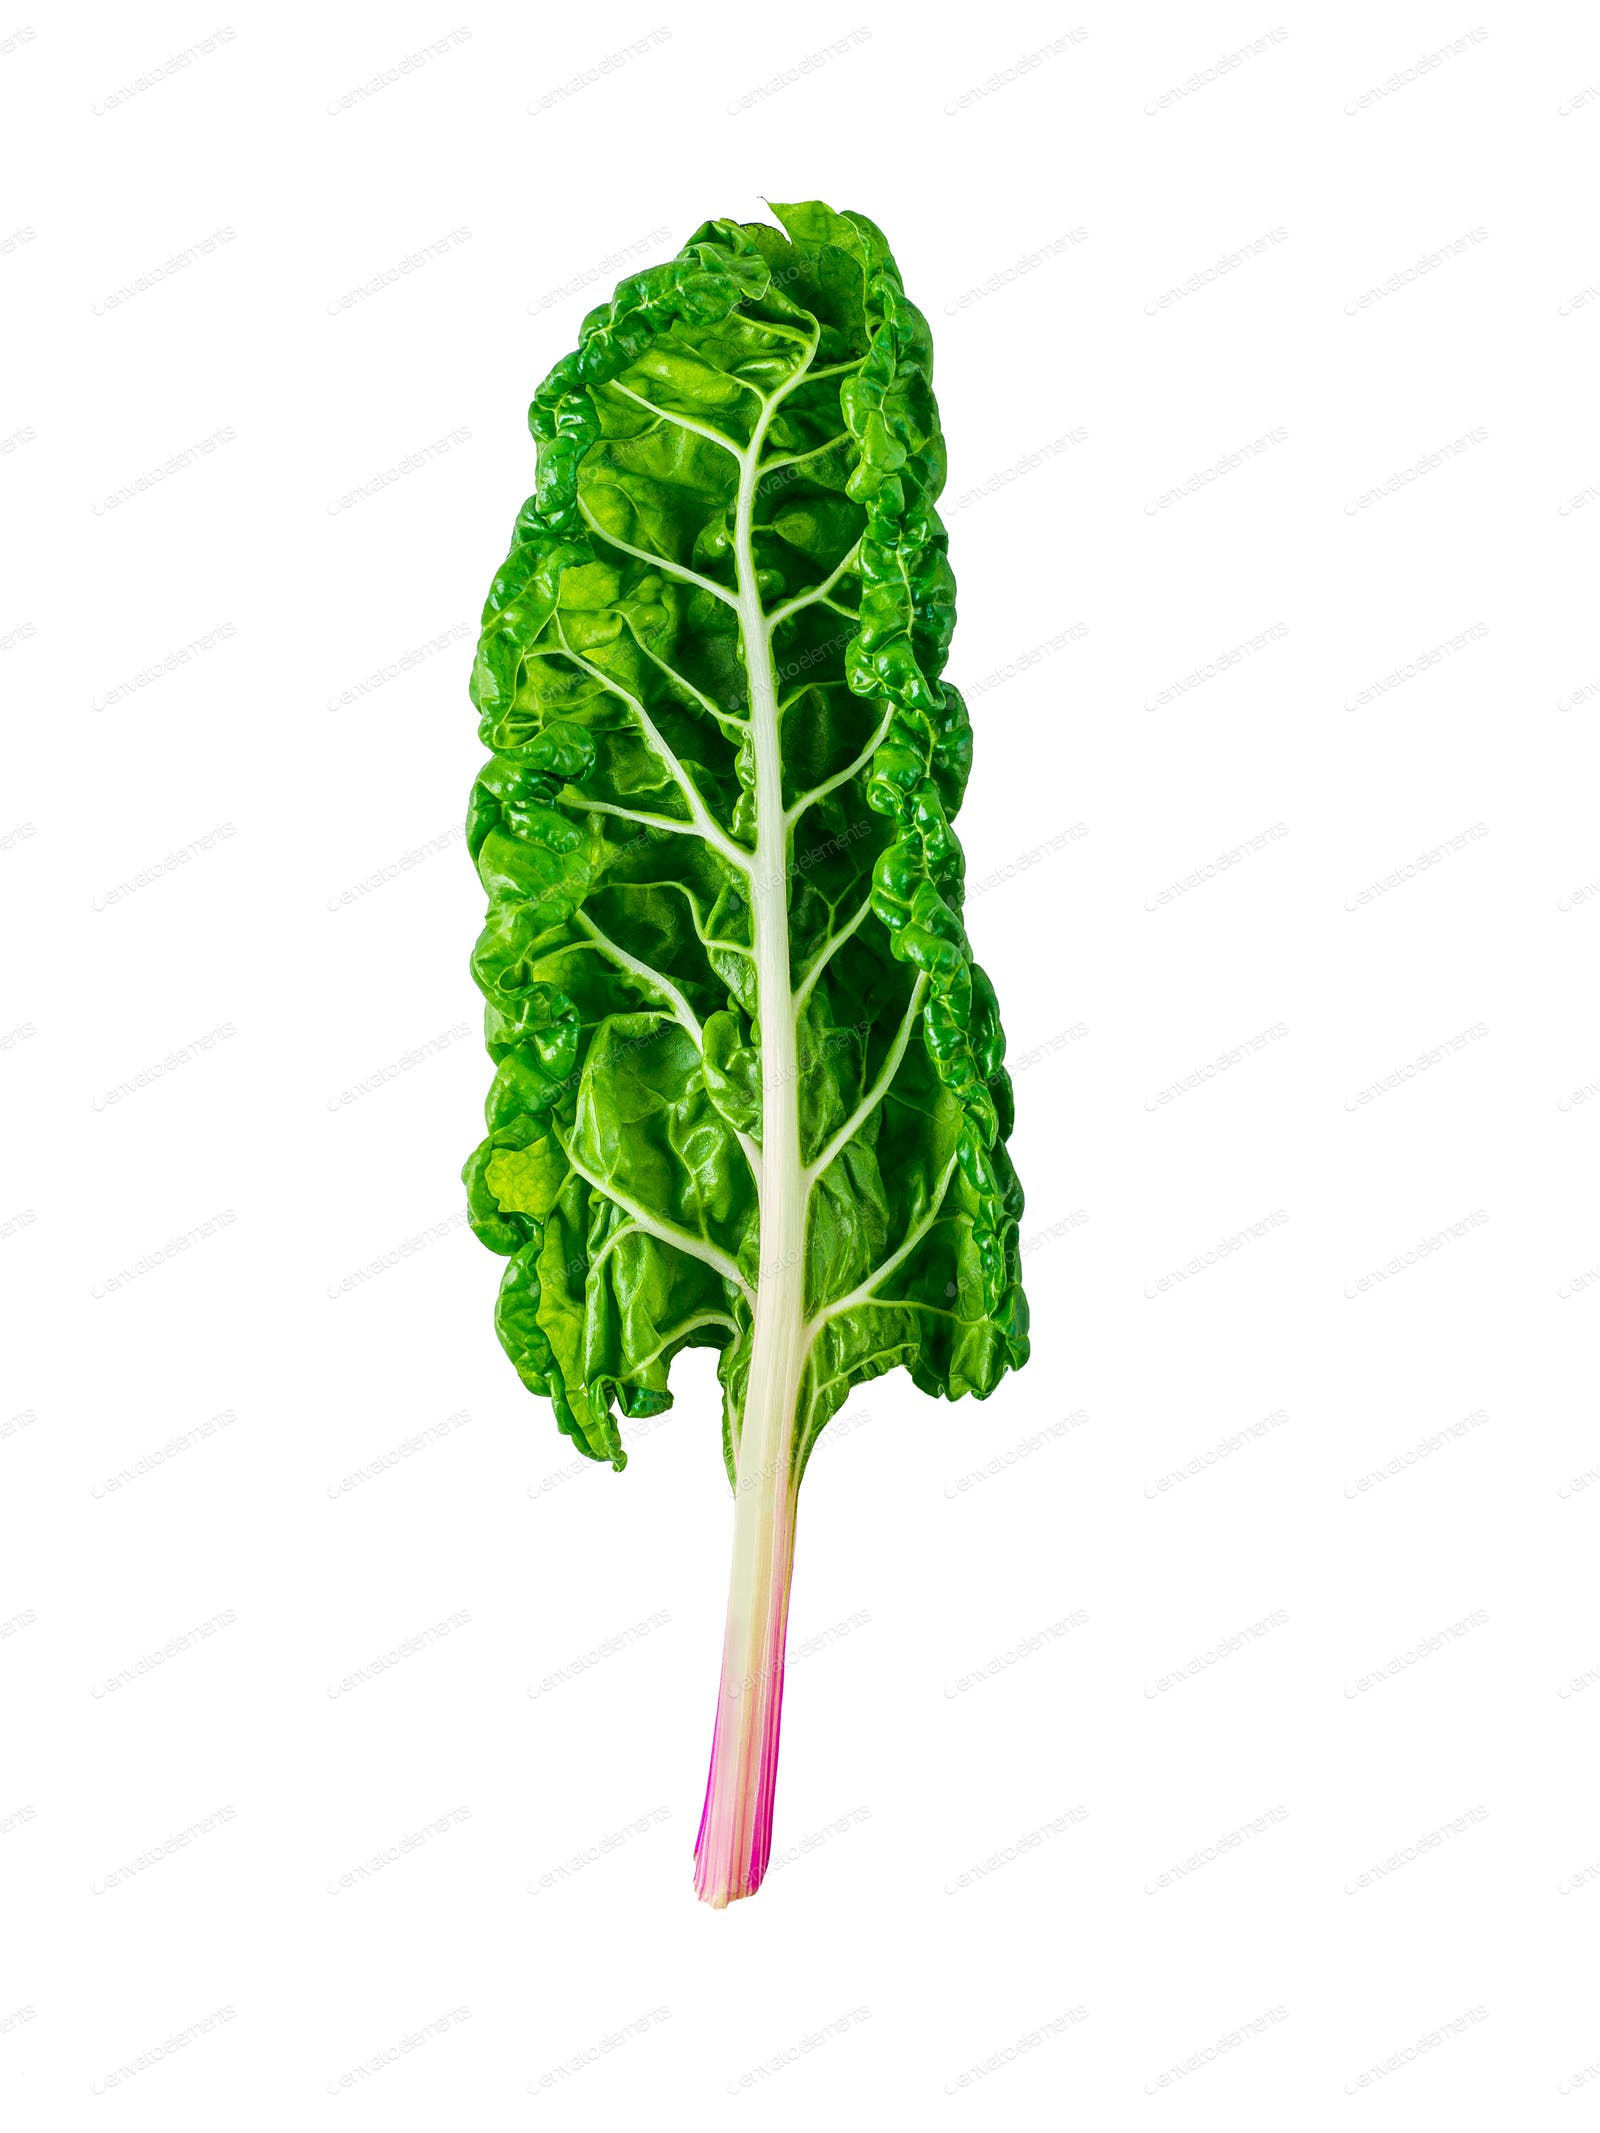 Swiss Rainbow Chard Isolated On White Photo By Fasci On Envato Elements